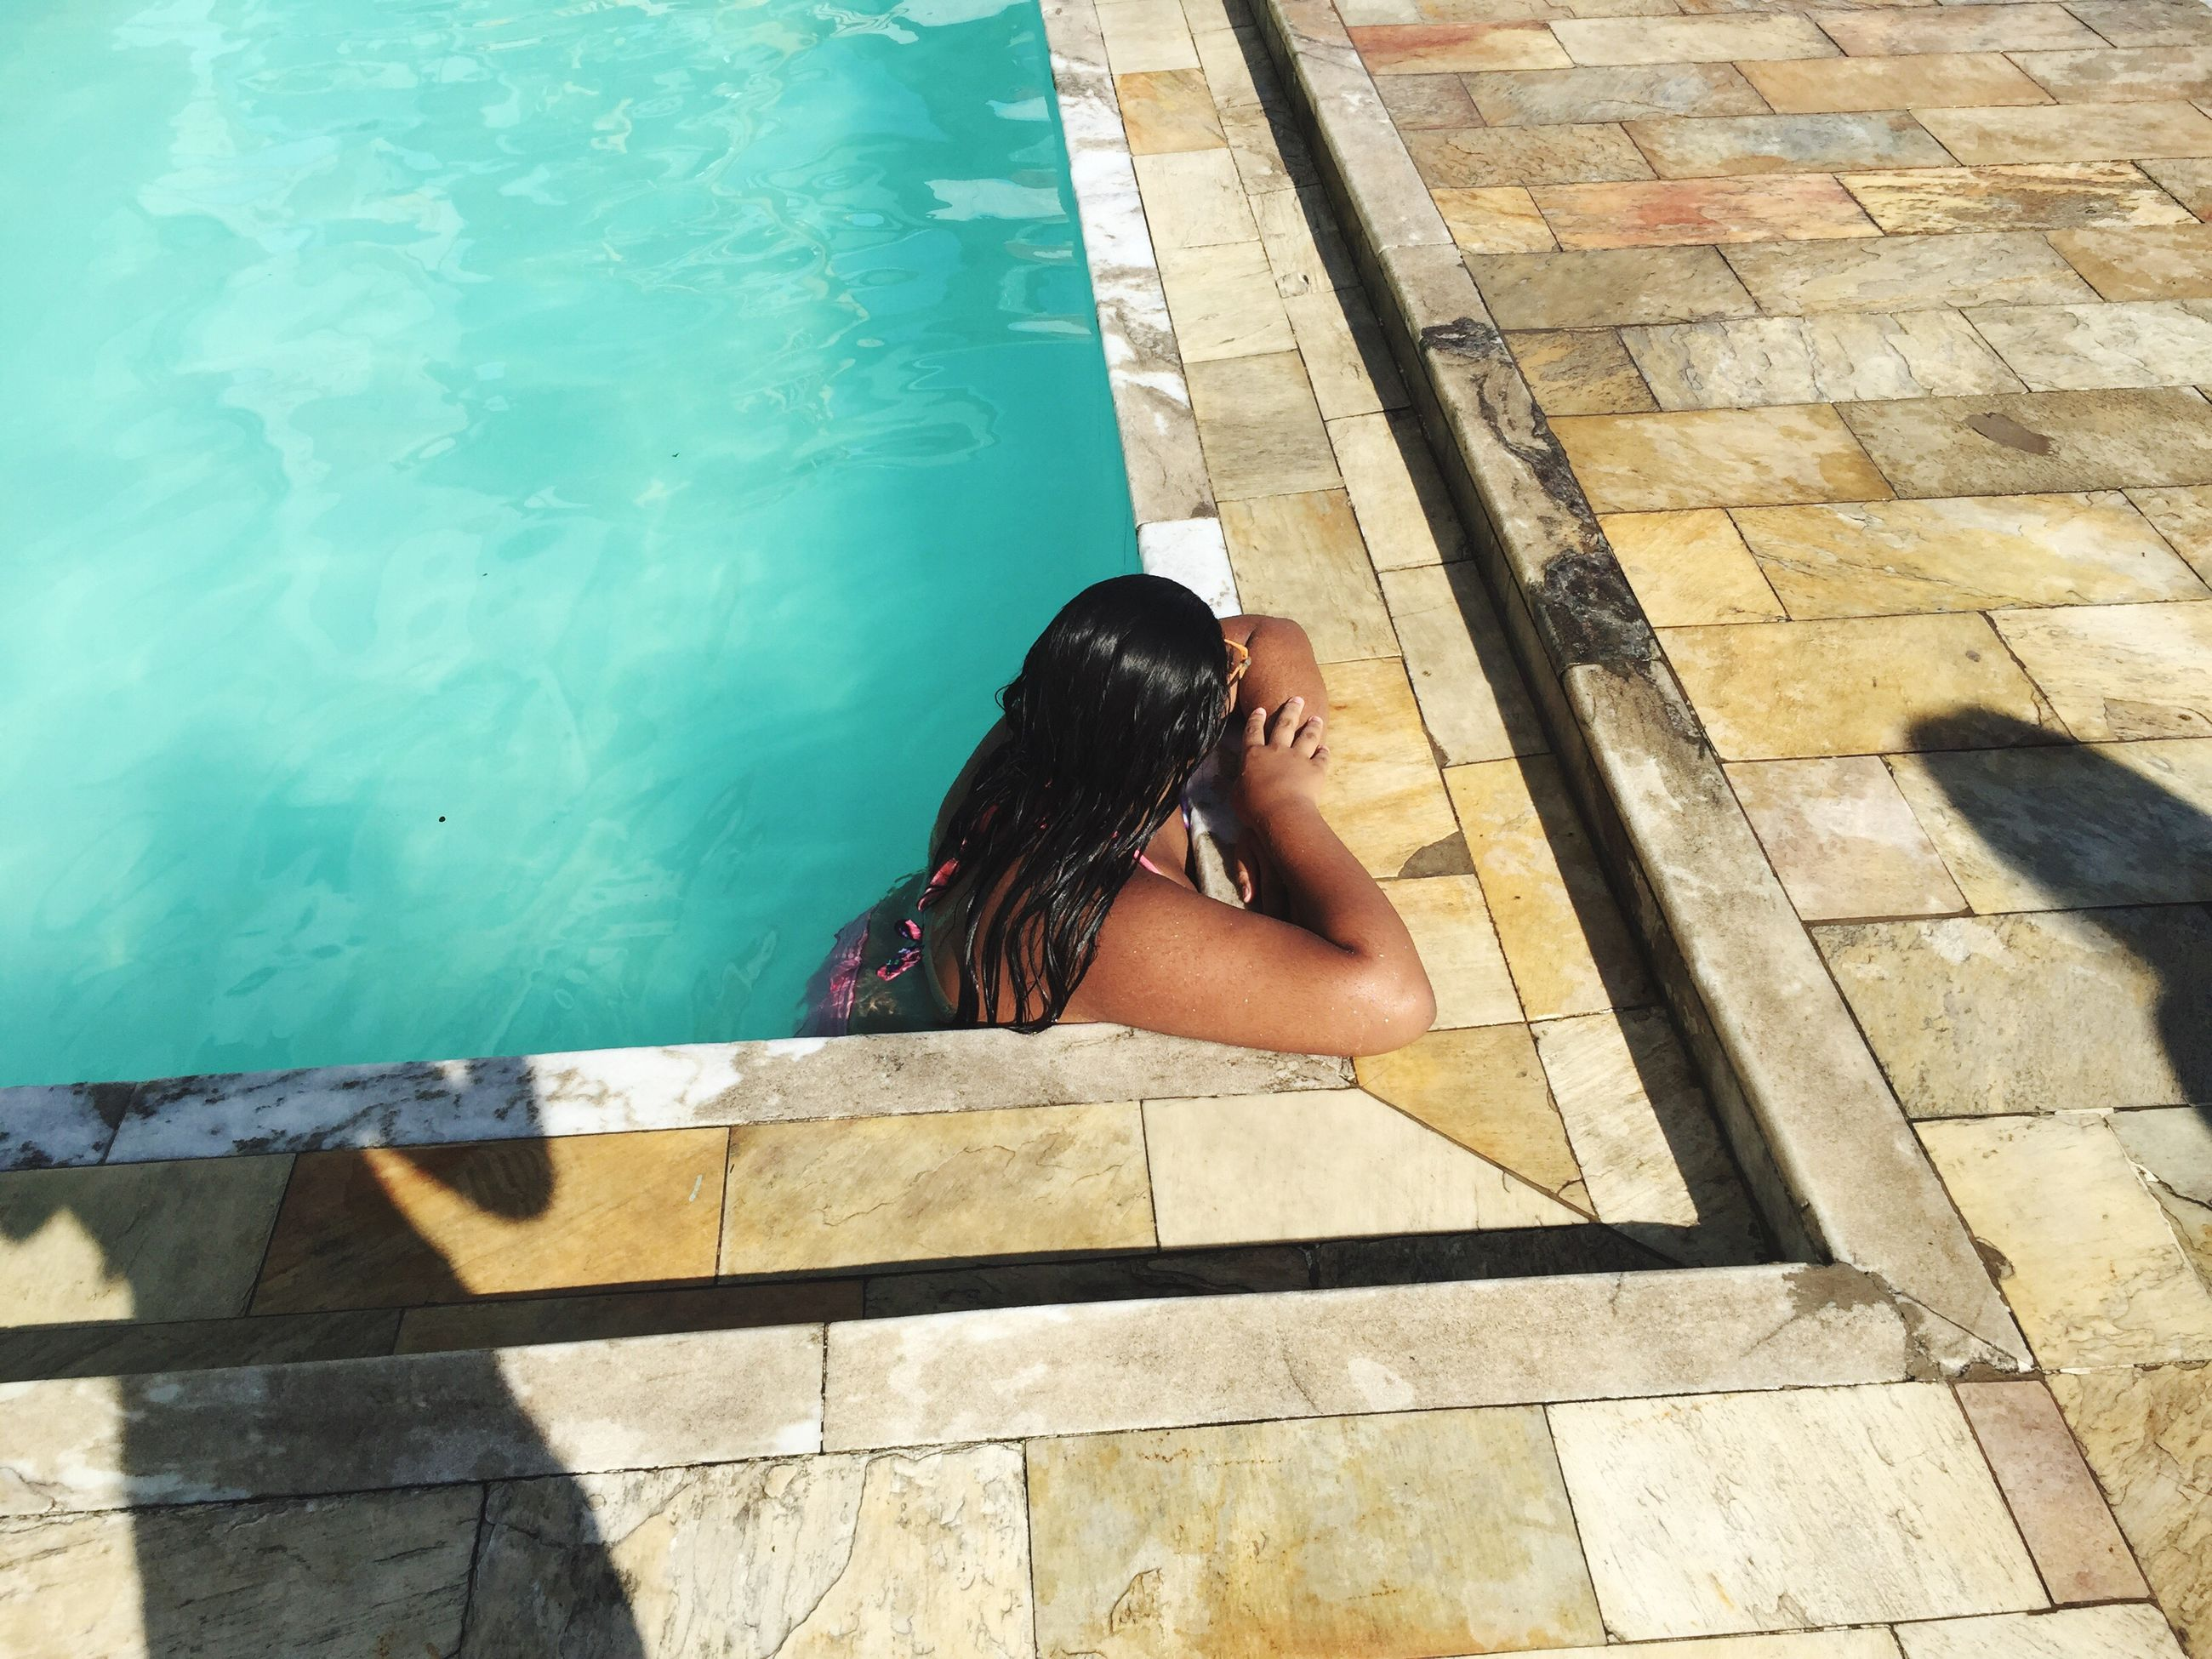 one person, sunlight, outdoors, women, adult, swimming pool, one young woman only, young women, young adult, leisure activity, one woman only, only women, day, real people, people, adults only